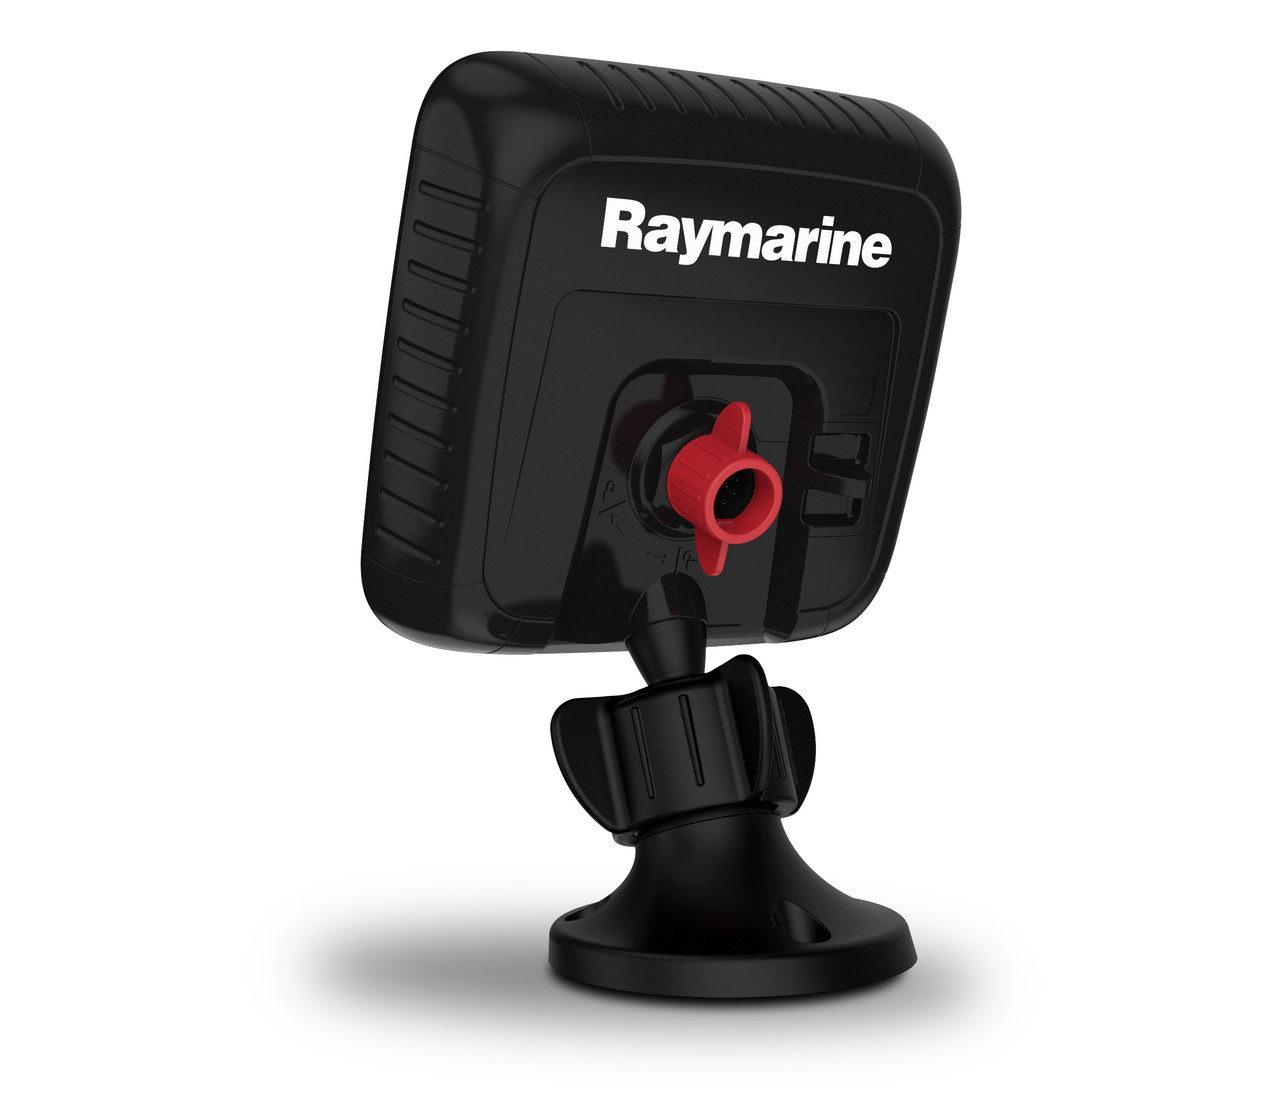 Raymarine Dragonfly 5PRO Fishfinder Back View